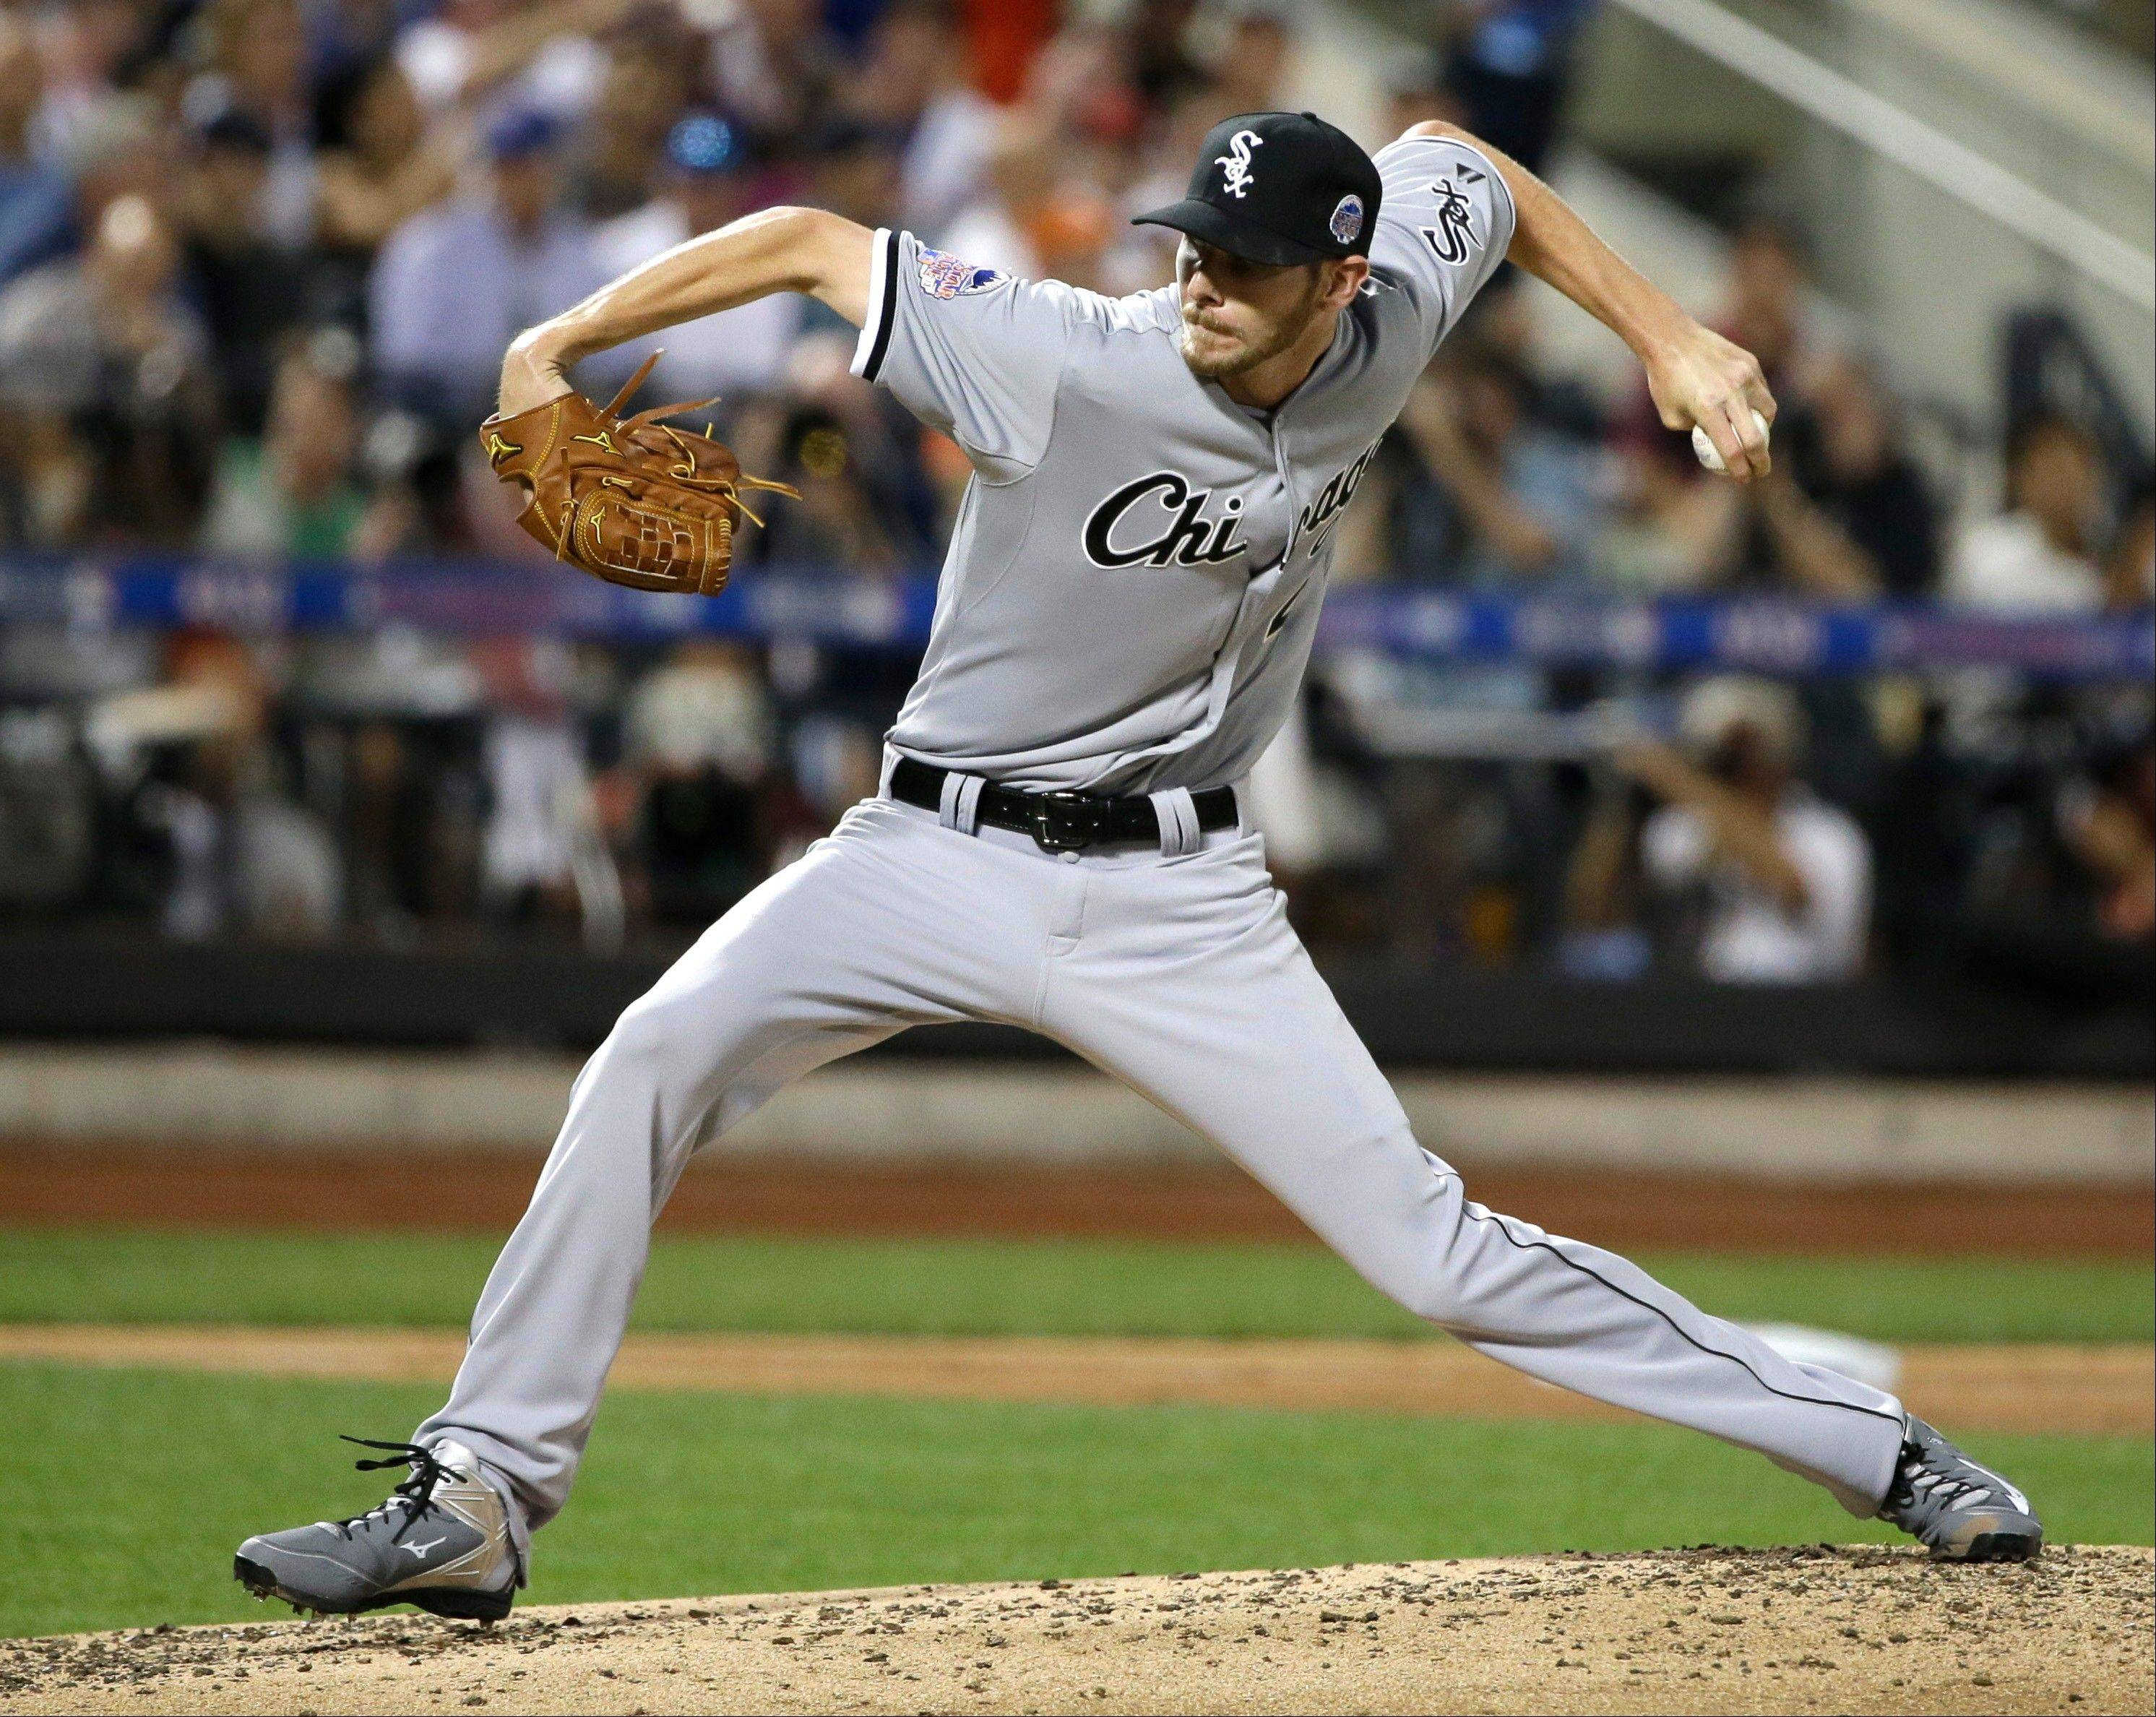 White Sox starting pitcher Chris Sale just has too much on the plus side for a trade to make sense.